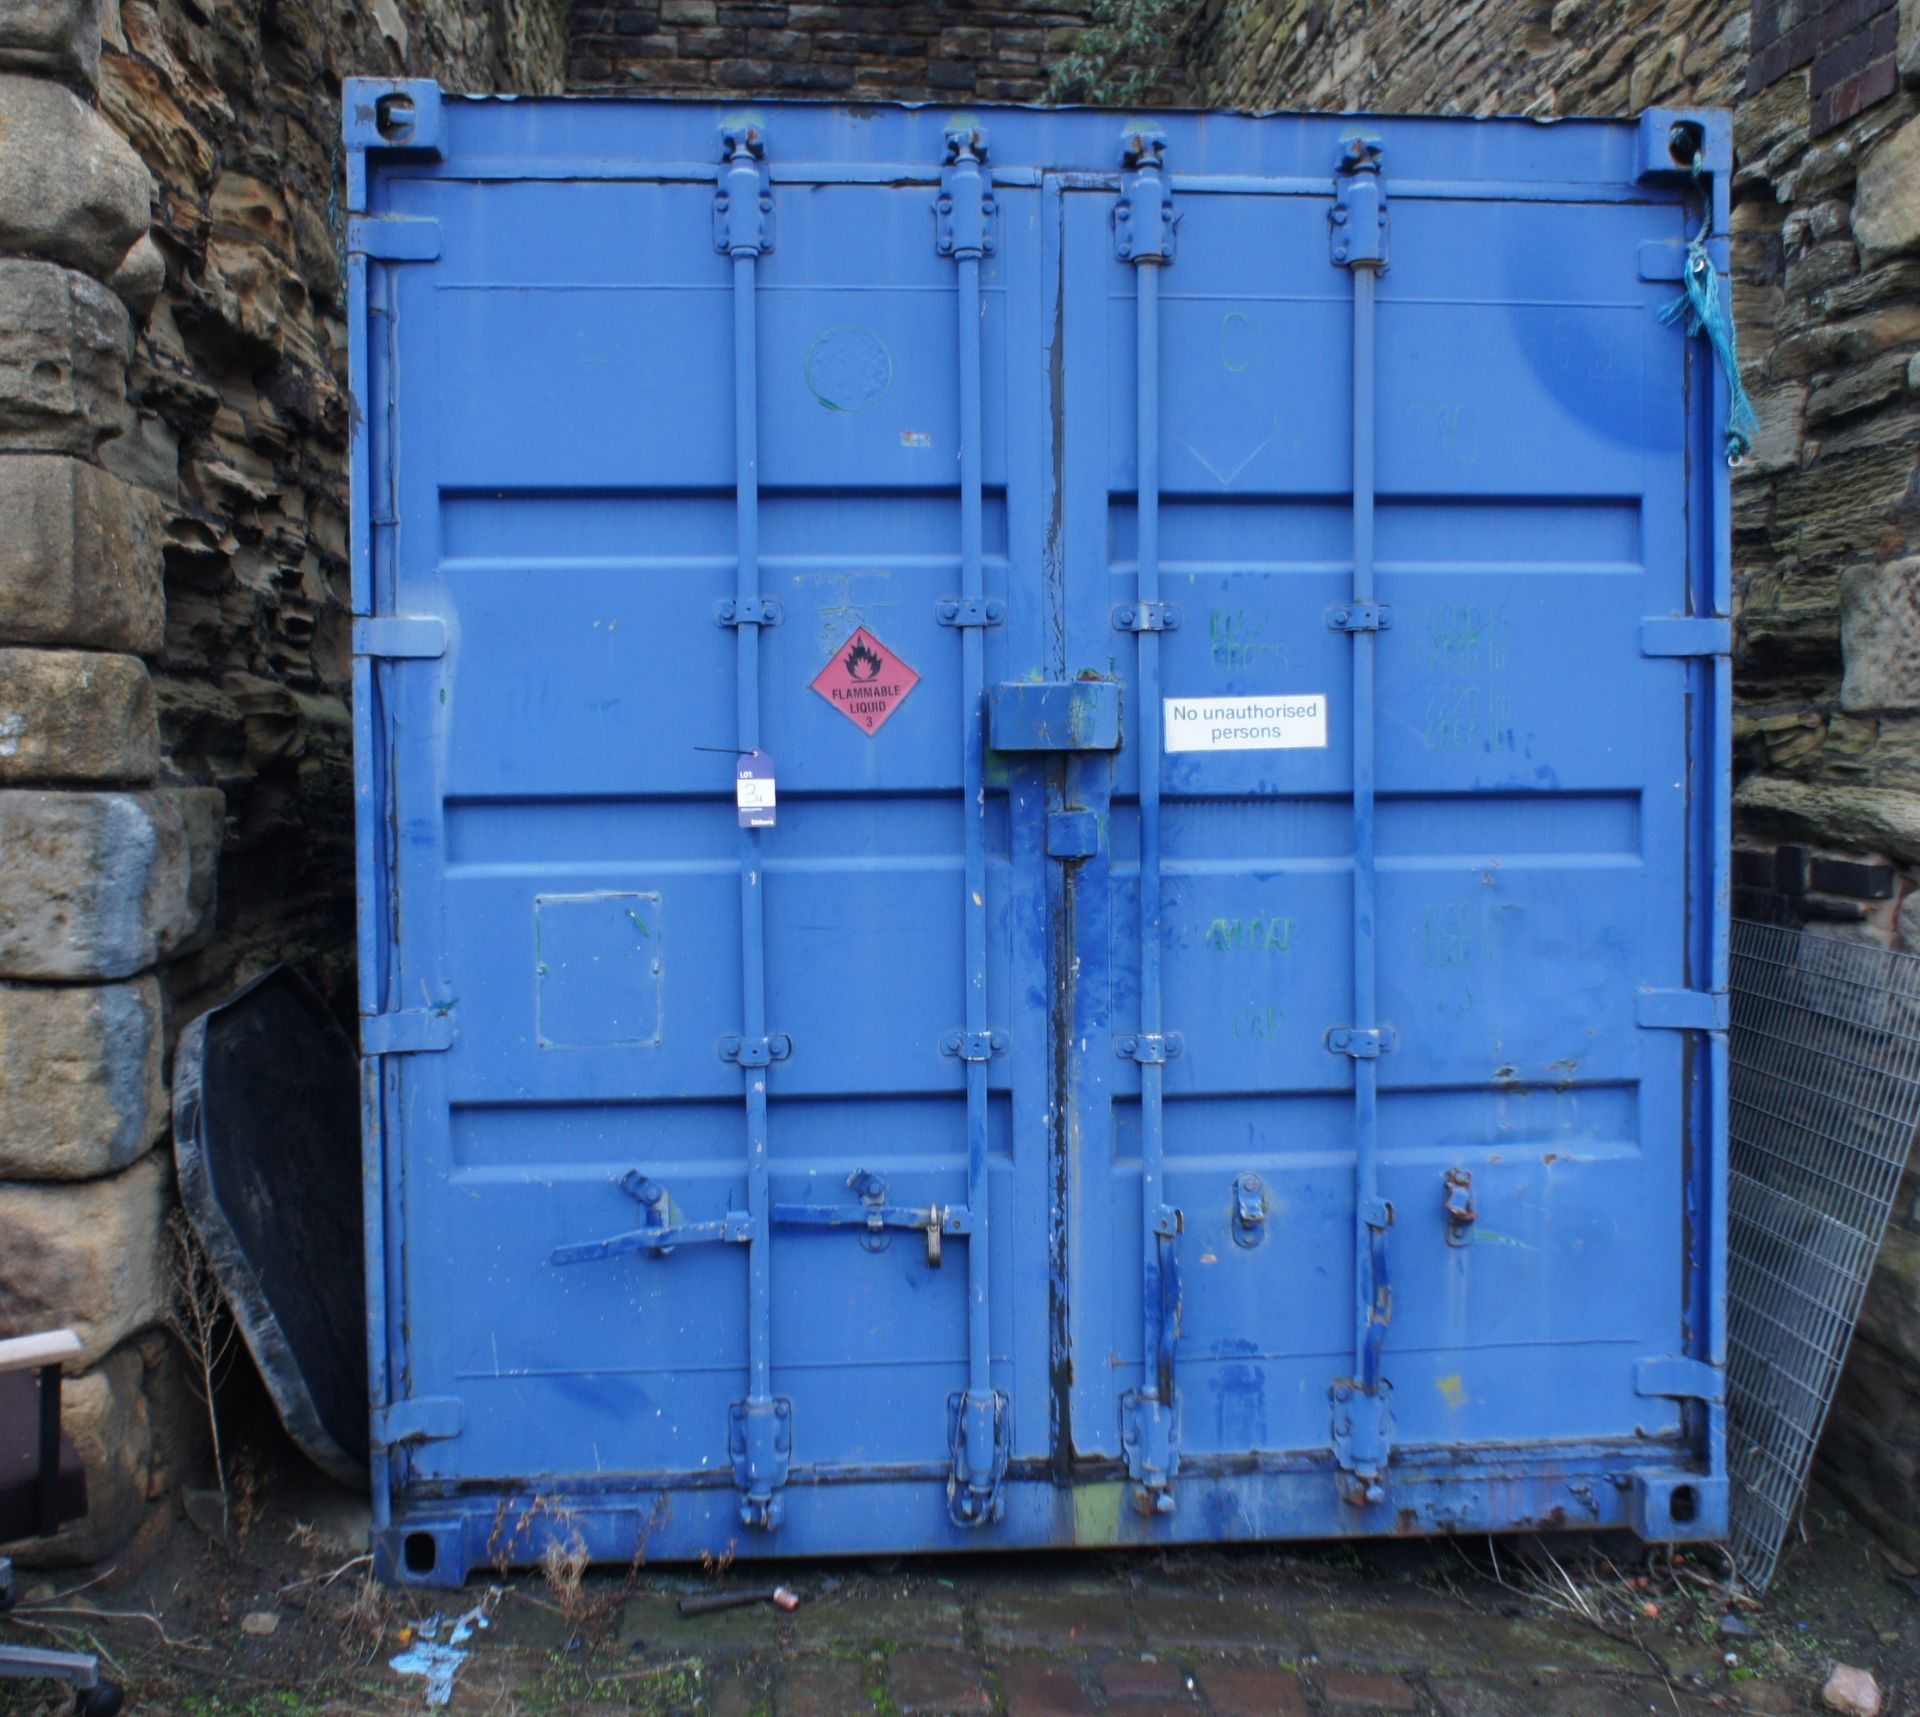 Steel shipping/storage container 20ft x 8ft (Delay - Image 2 of 2